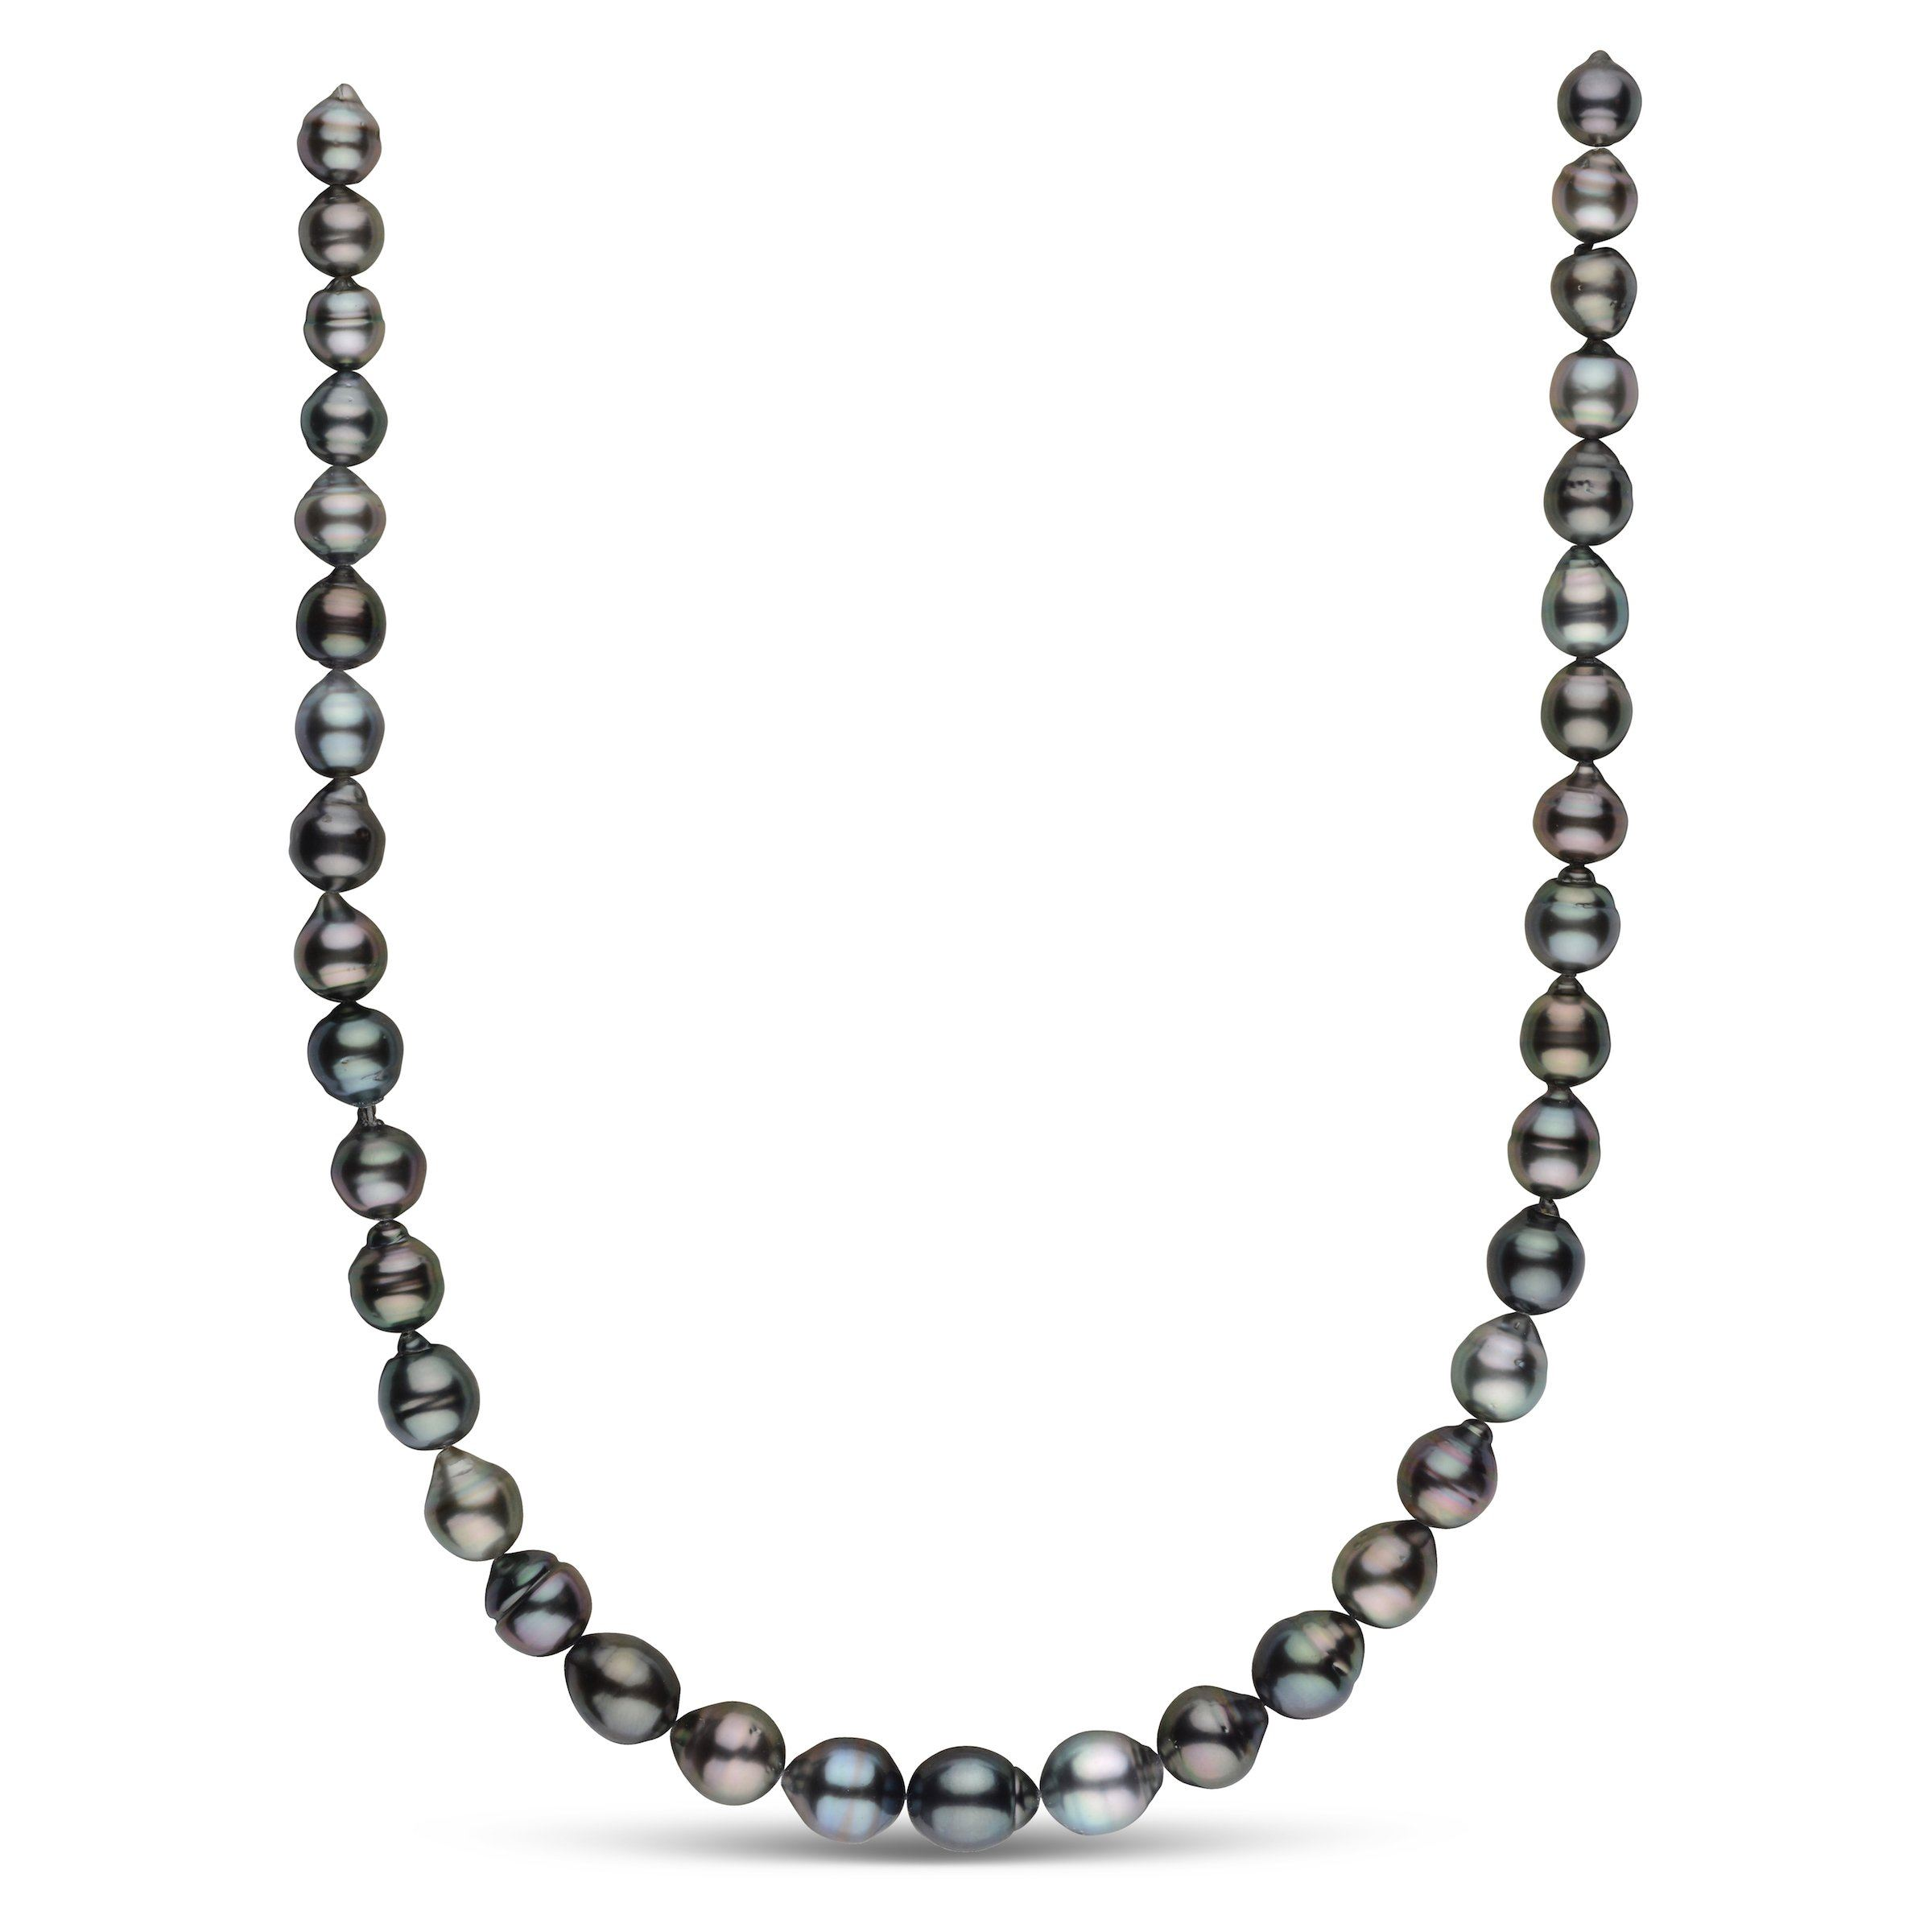 8.2-10.4 mm AAA Tahitian Baroque Pearl Necklace